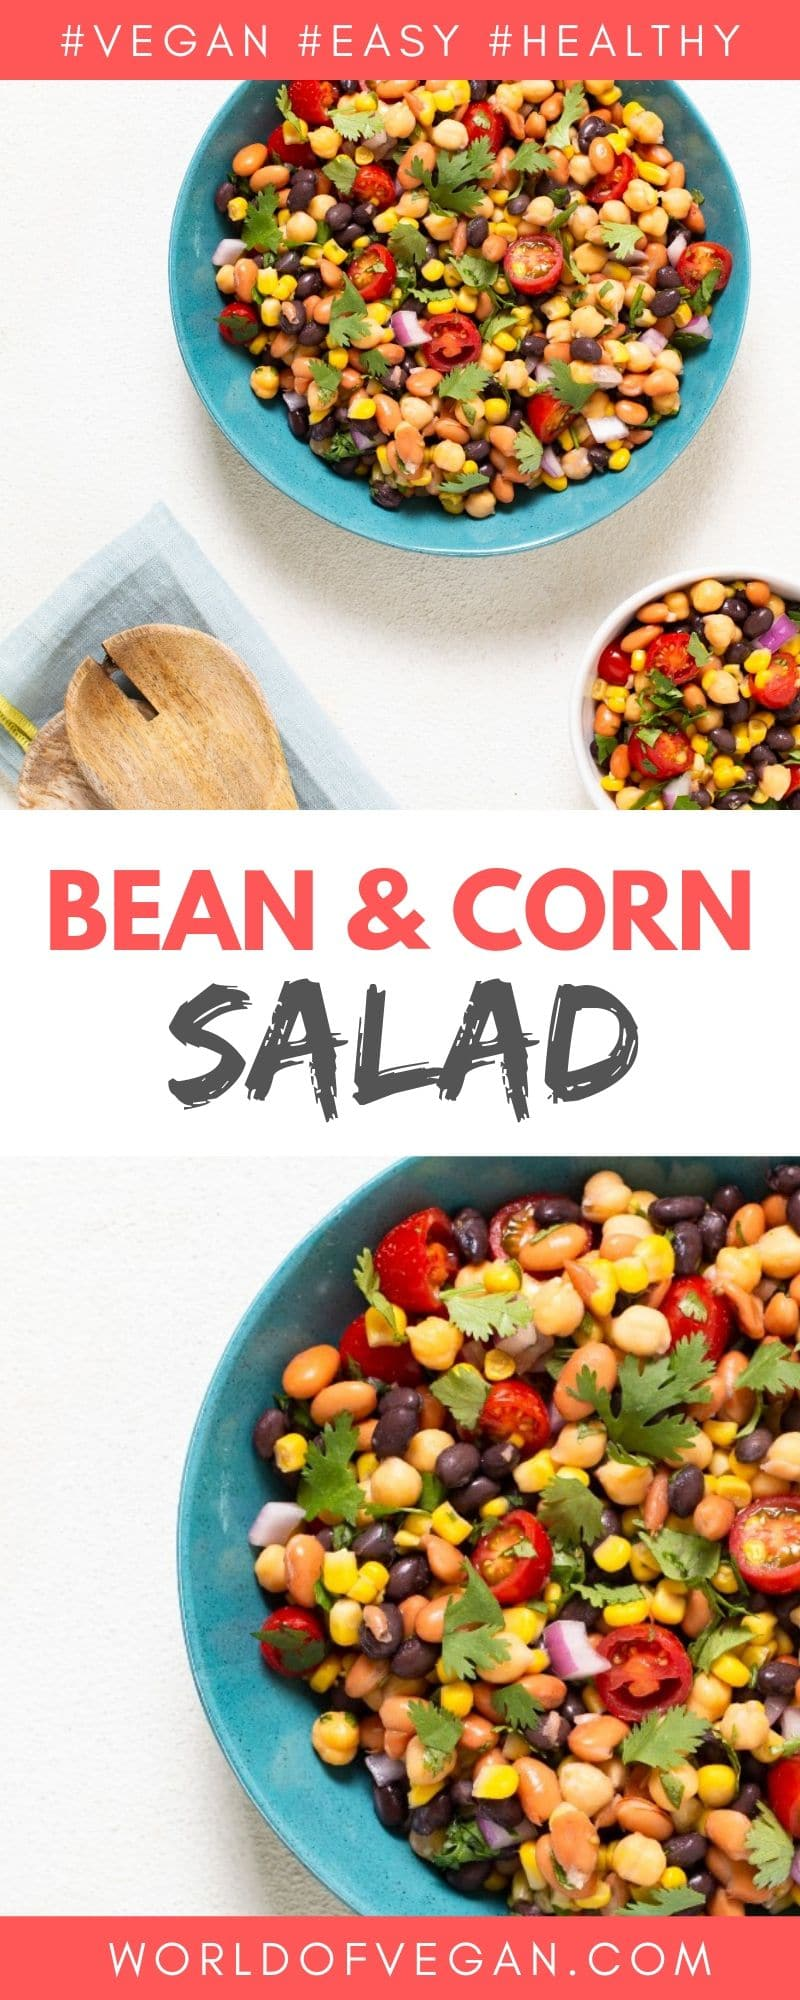 Bean & Corn Salad | WorldofVegan.com #vegan #vegetarian #recipe #healthy #mexican